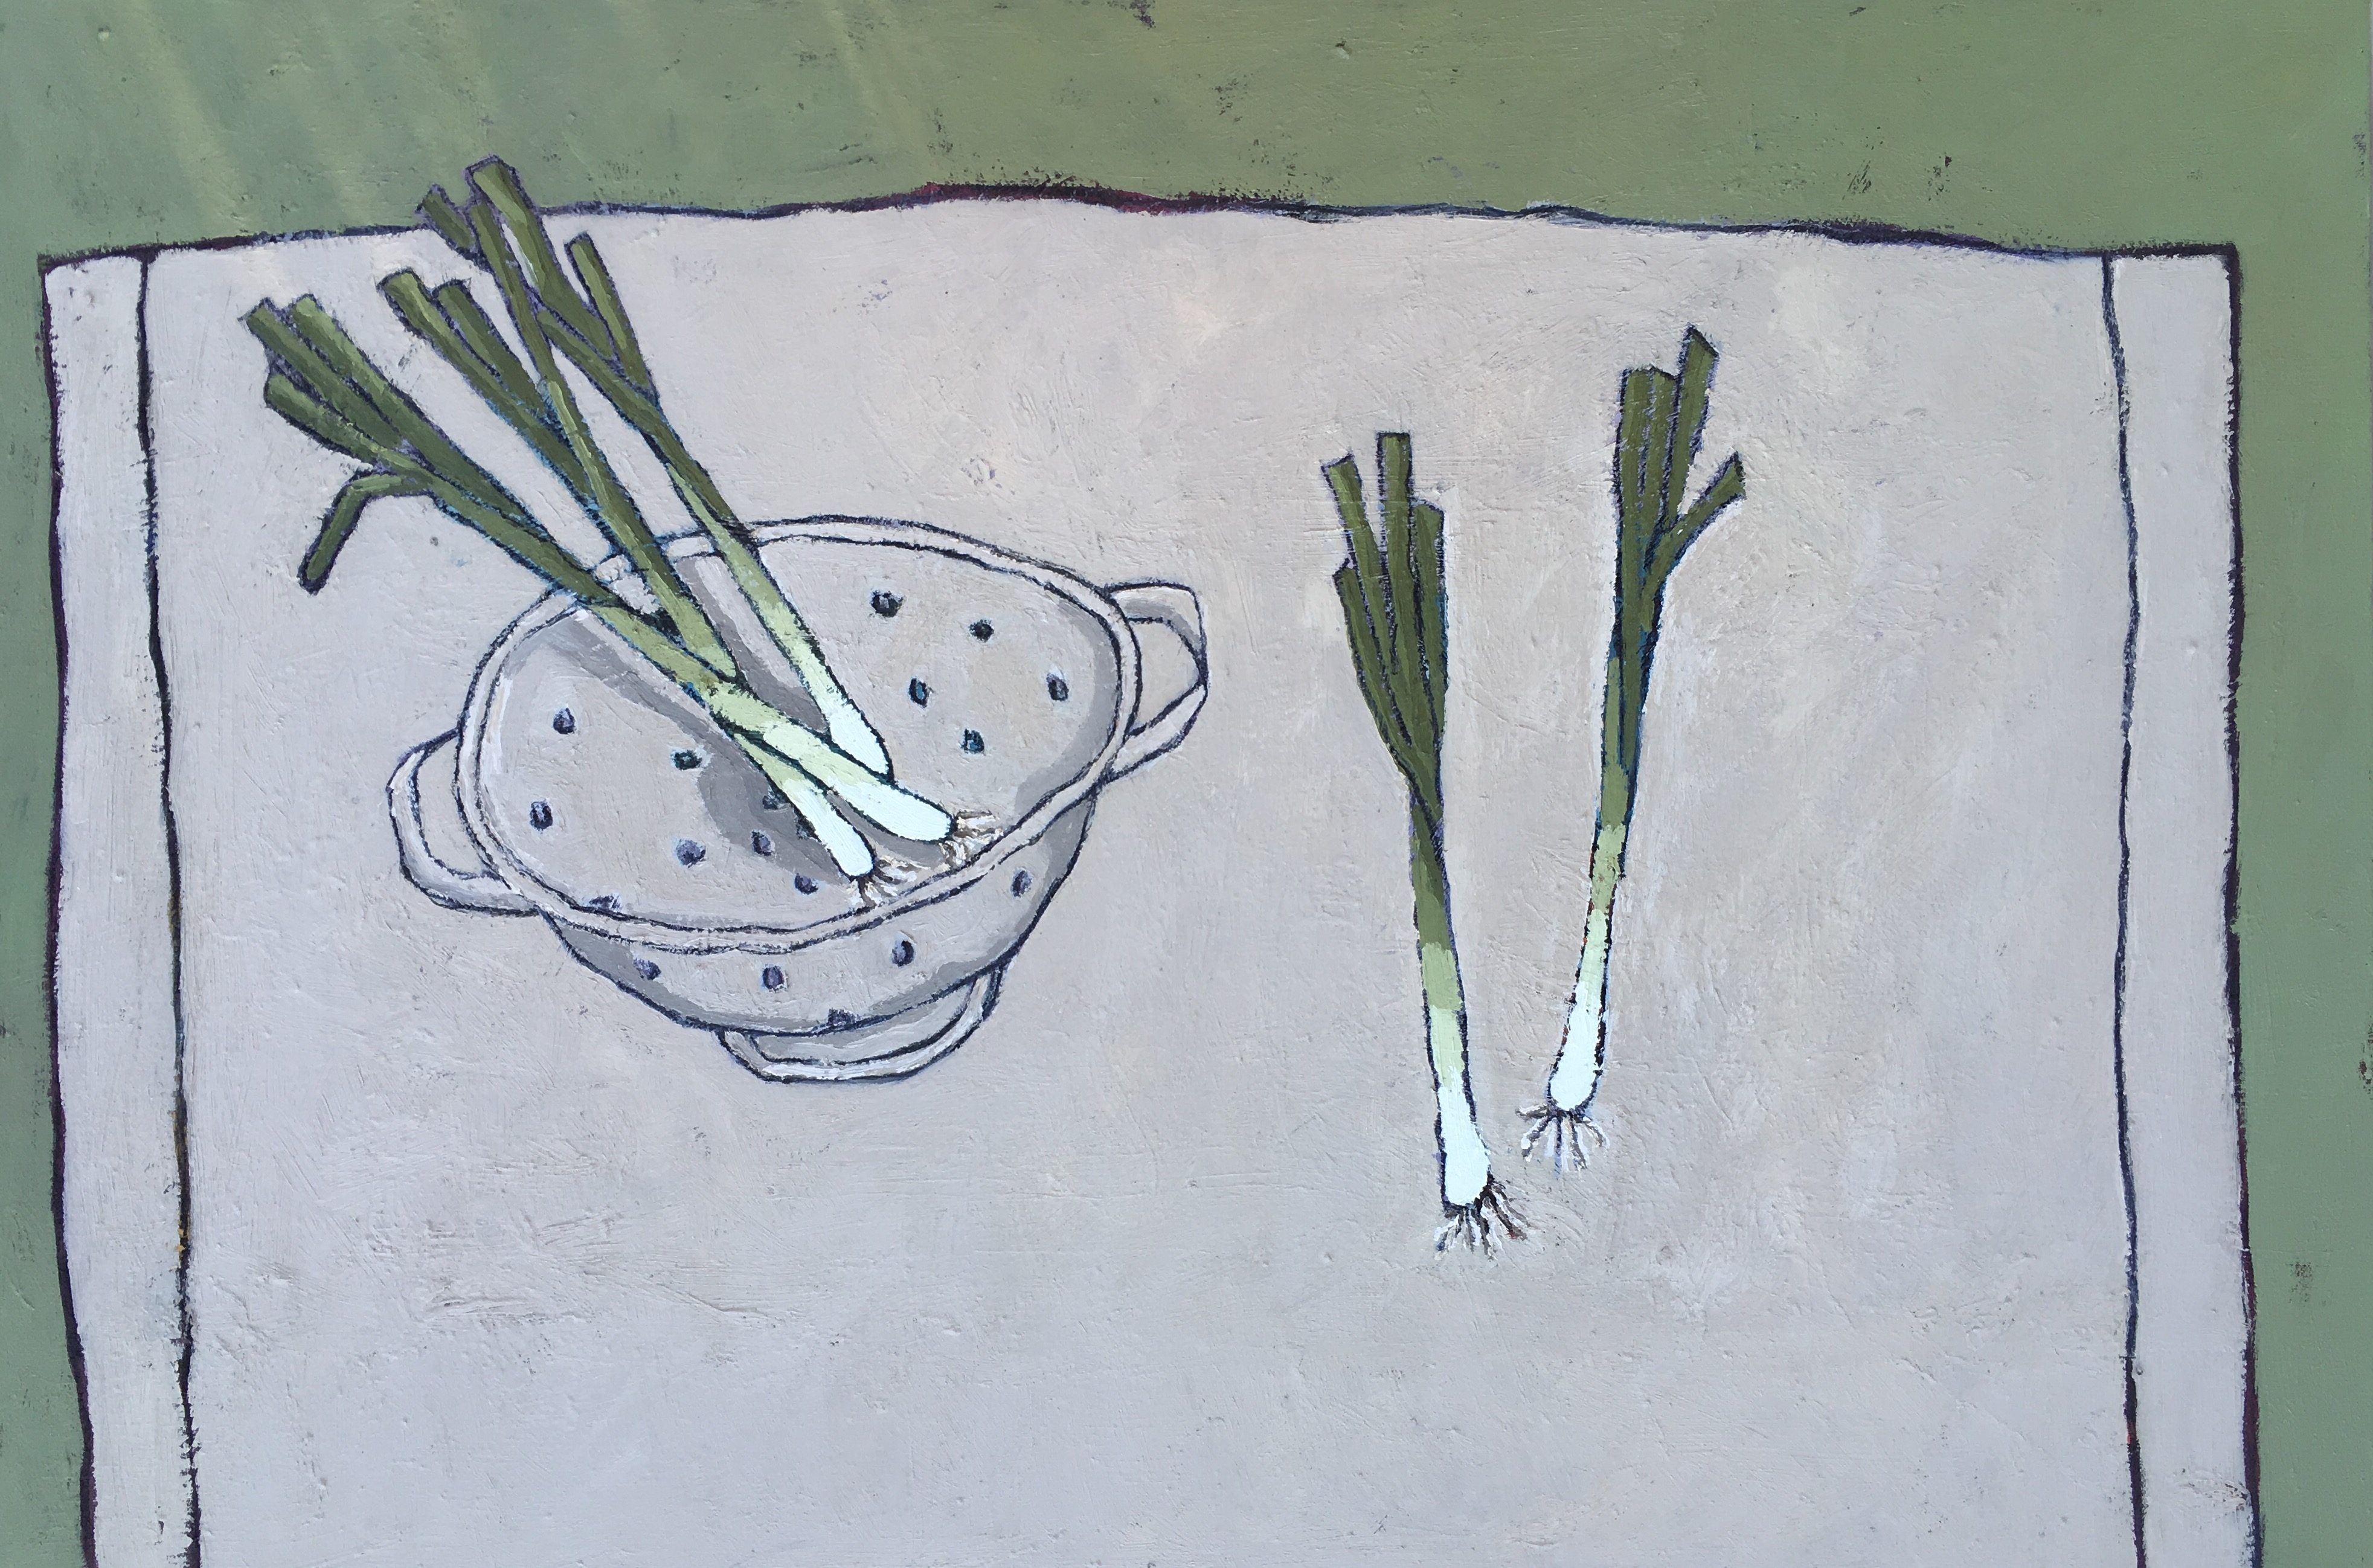 Five Spring Onions